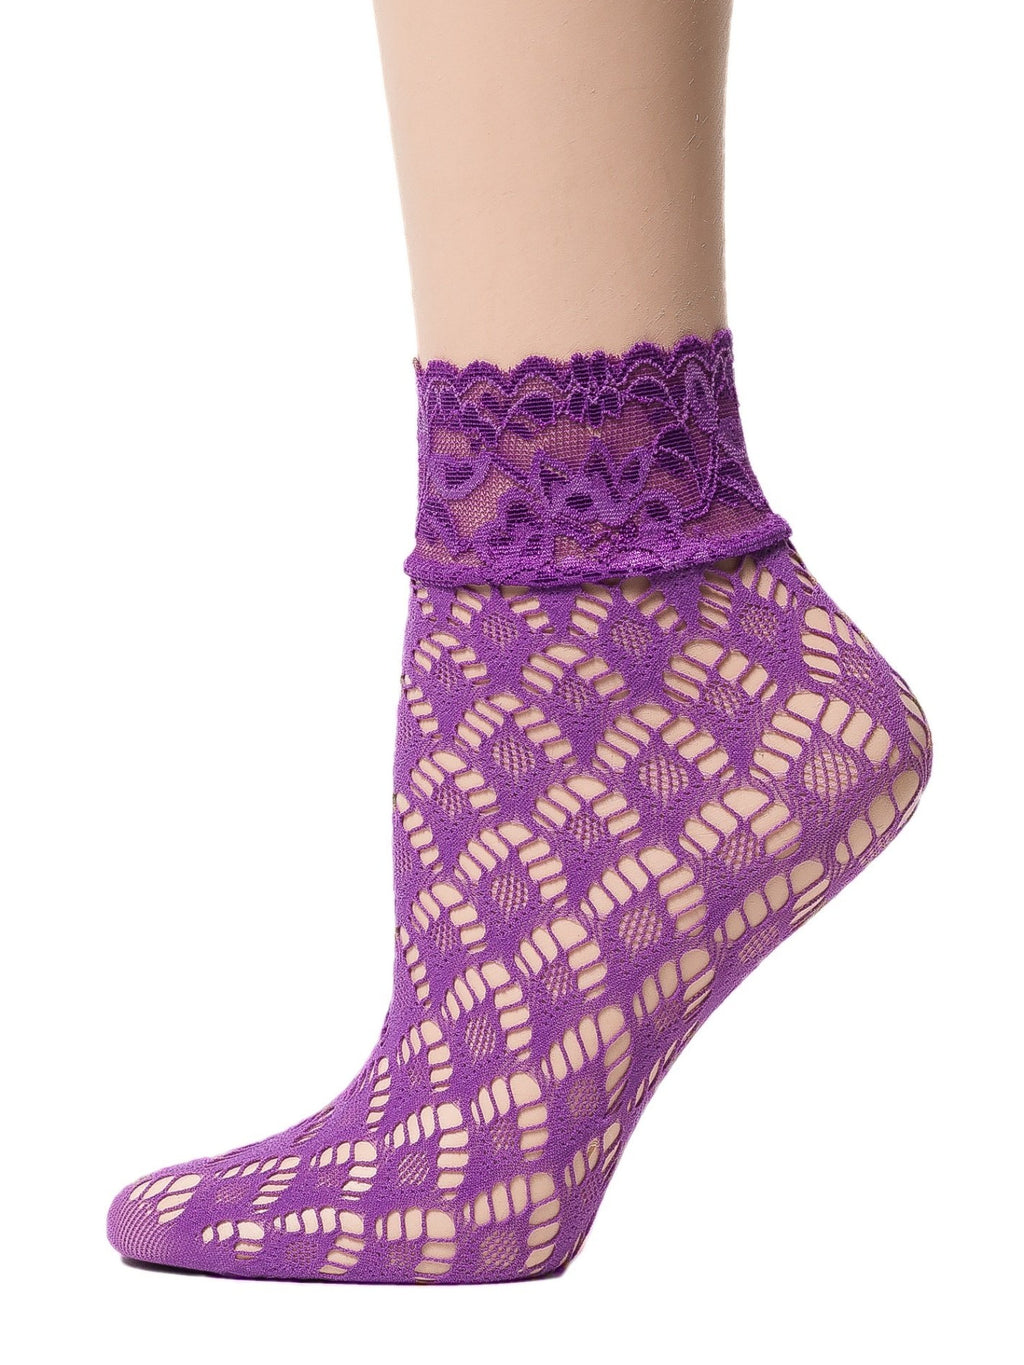 Windy Purple Mesh Socks - Global Trendz Fashion®